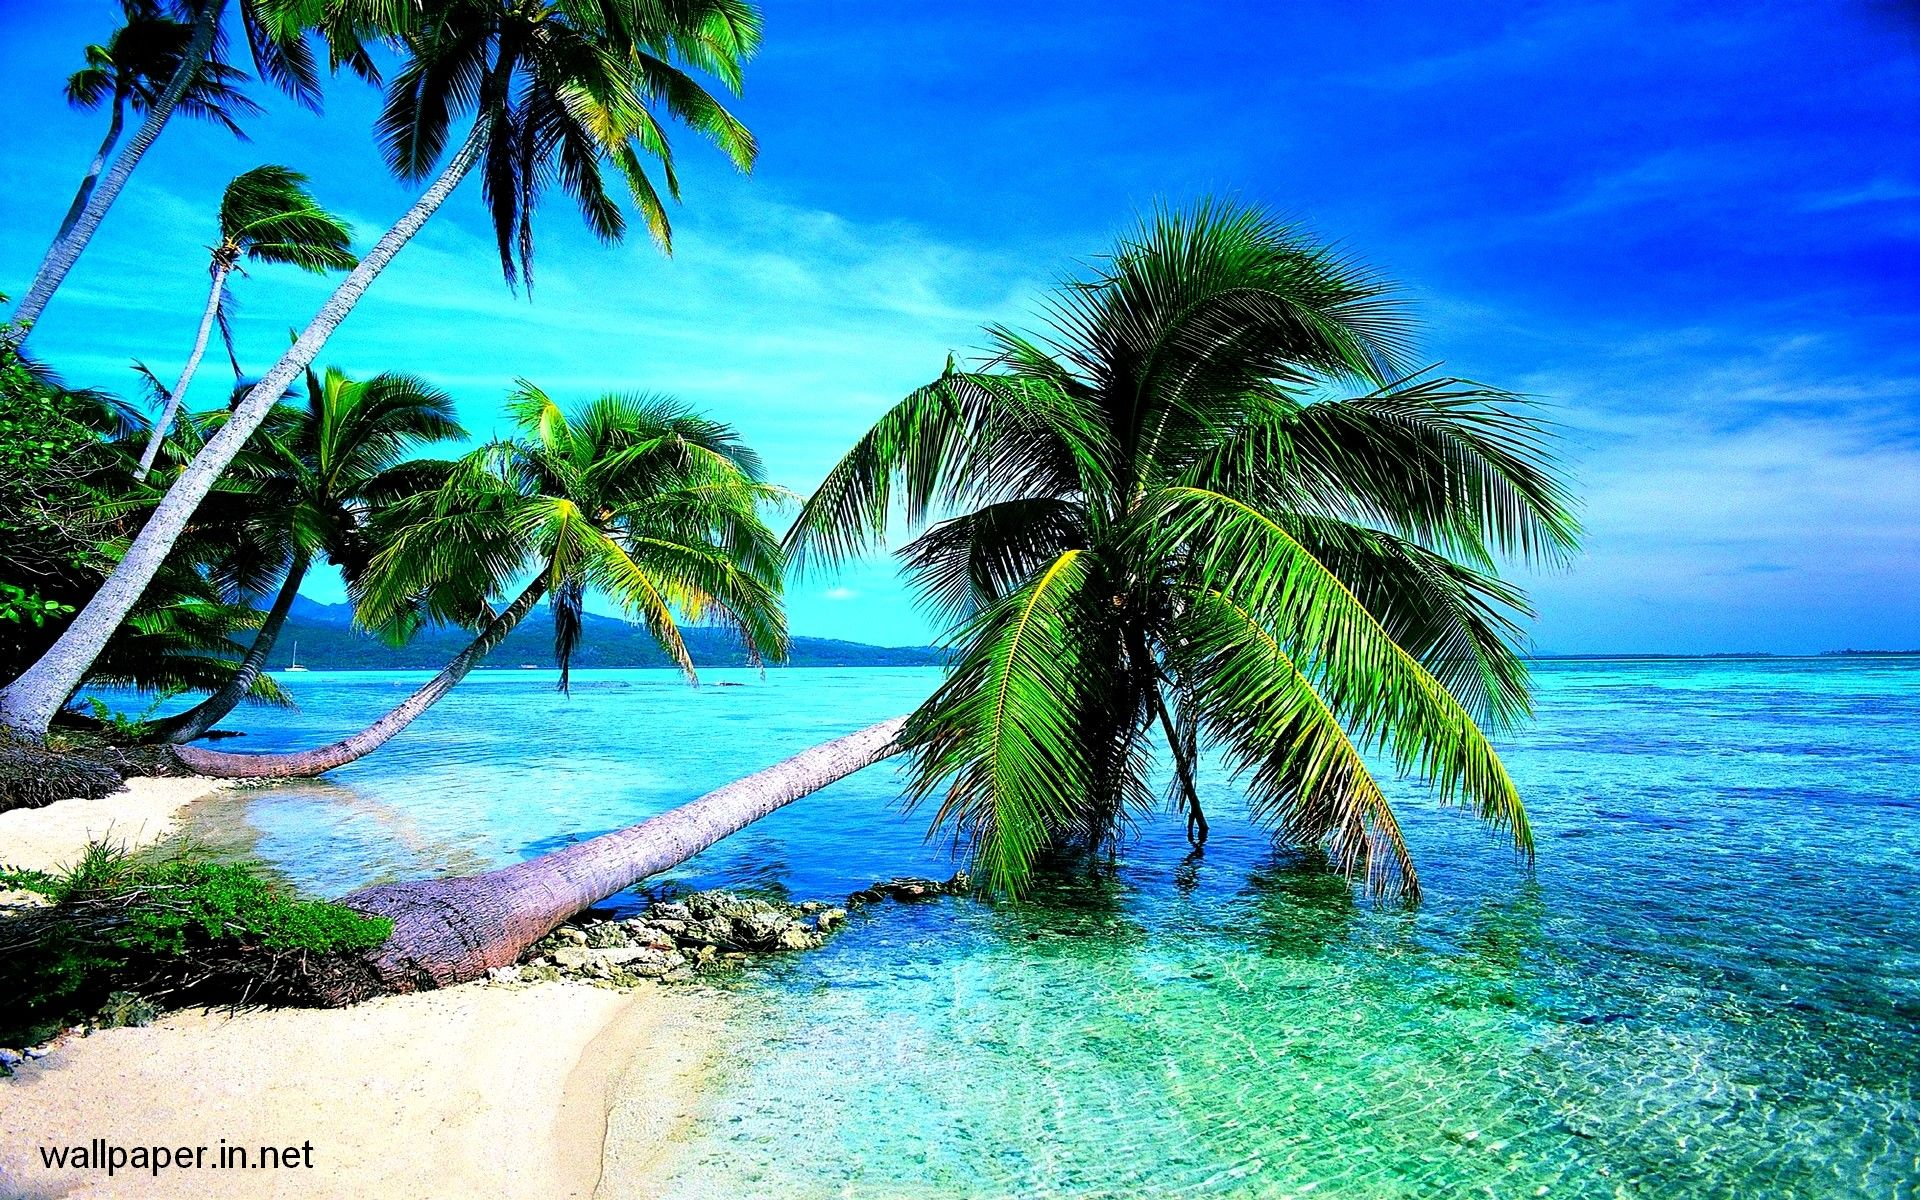 Beach hd wallpaper free download for laptop beach - Hd wallpaper for laptop 14 inch ...